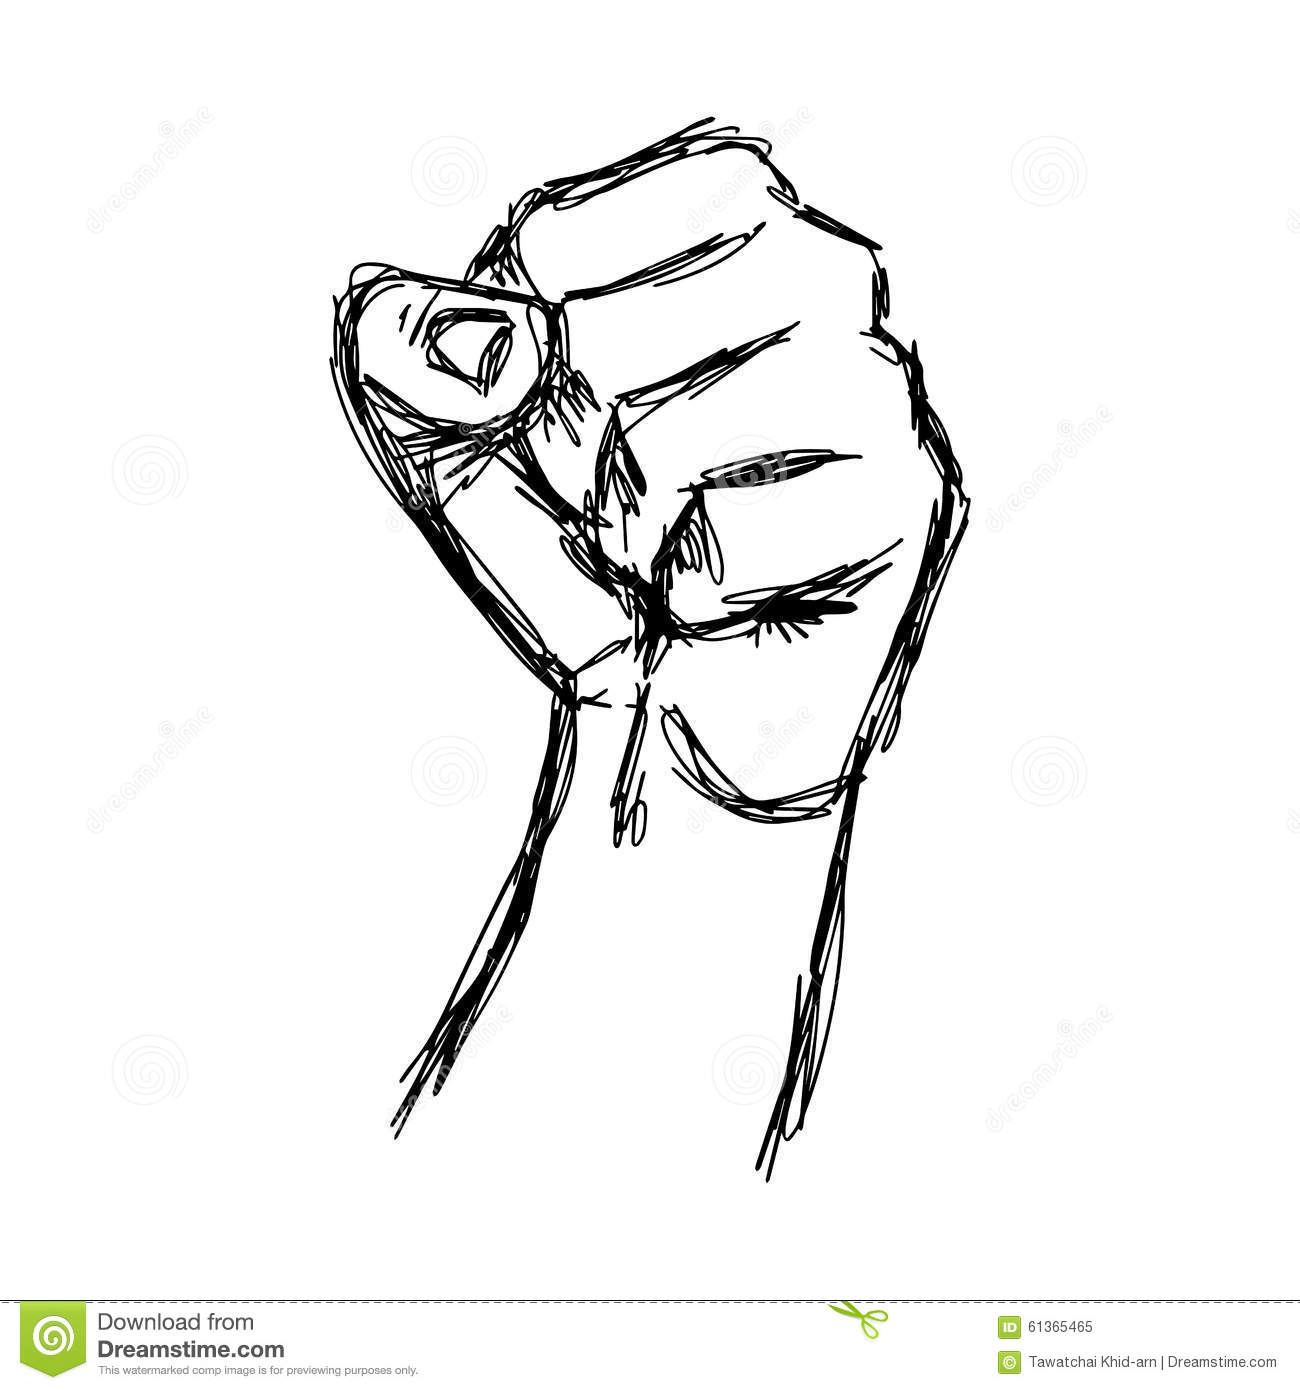 1300x1390 A Drawing Of A Fist Clenched Fist. Hand Clenched Fist. Hand